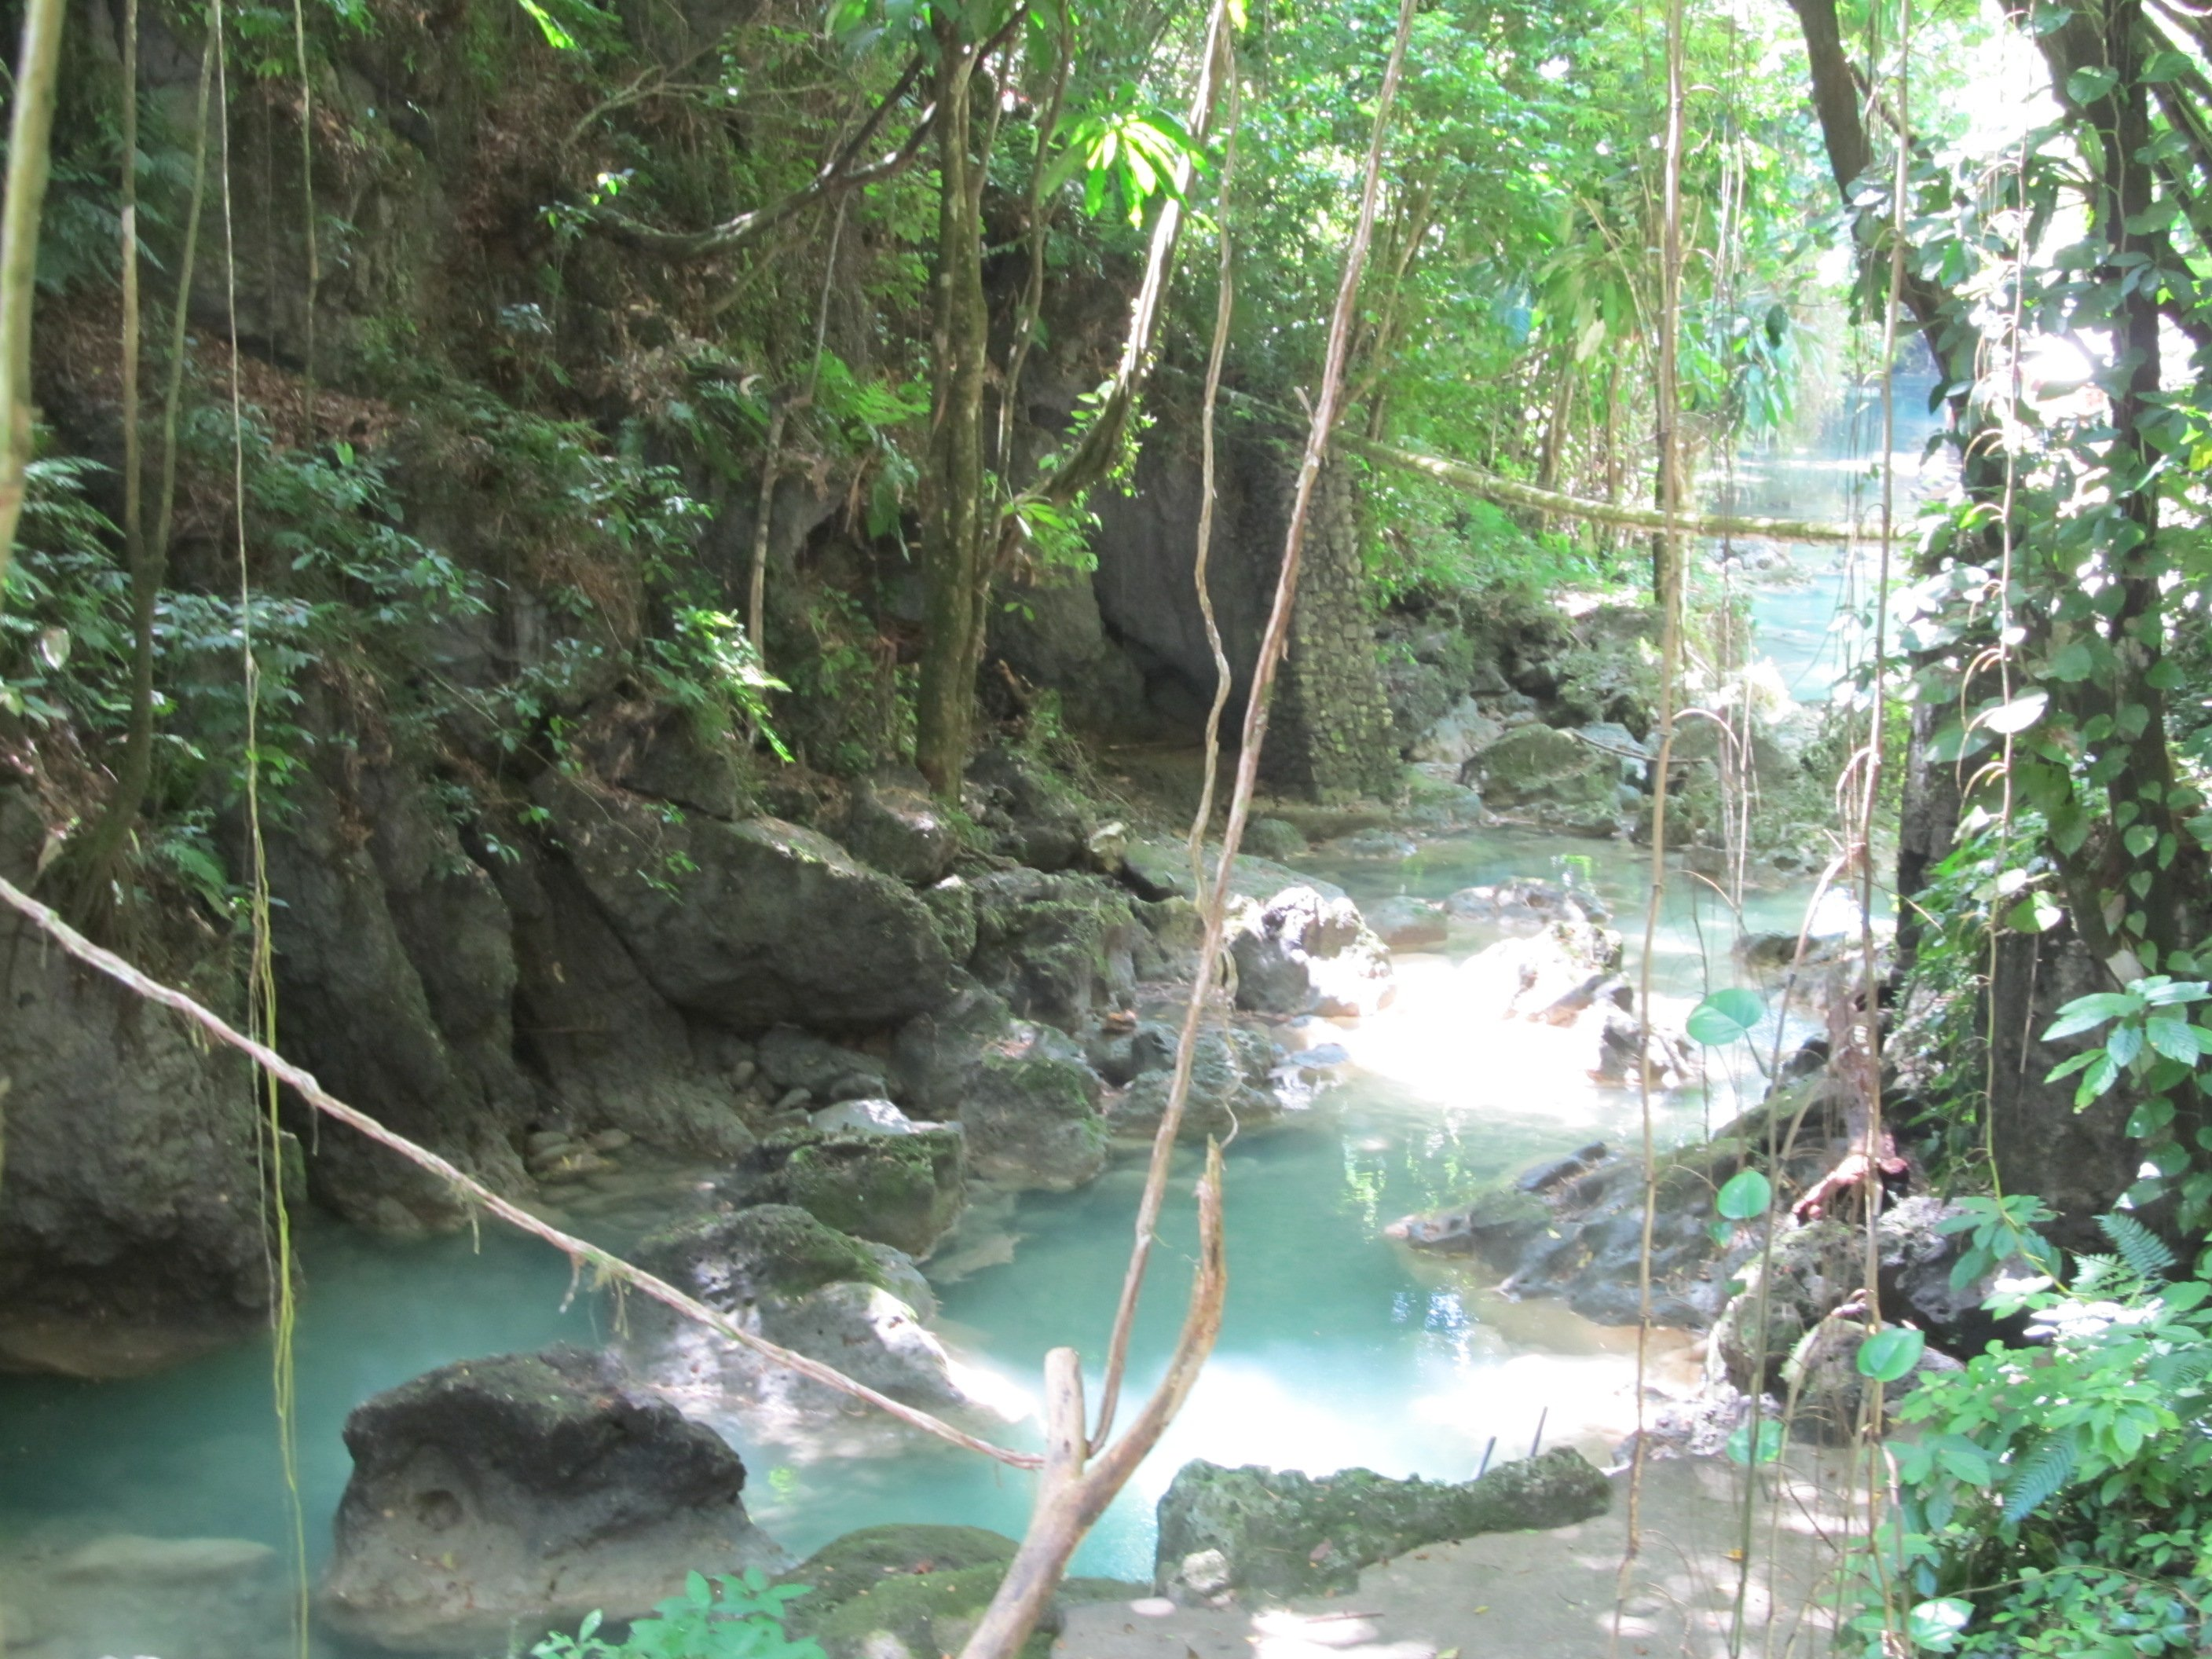 Spend a day at the enchanting Somerset Falls in the beautiful parish of Portland, Jamaica. This gorgeous natural attraction has activities on property that the whole family will enjoy.